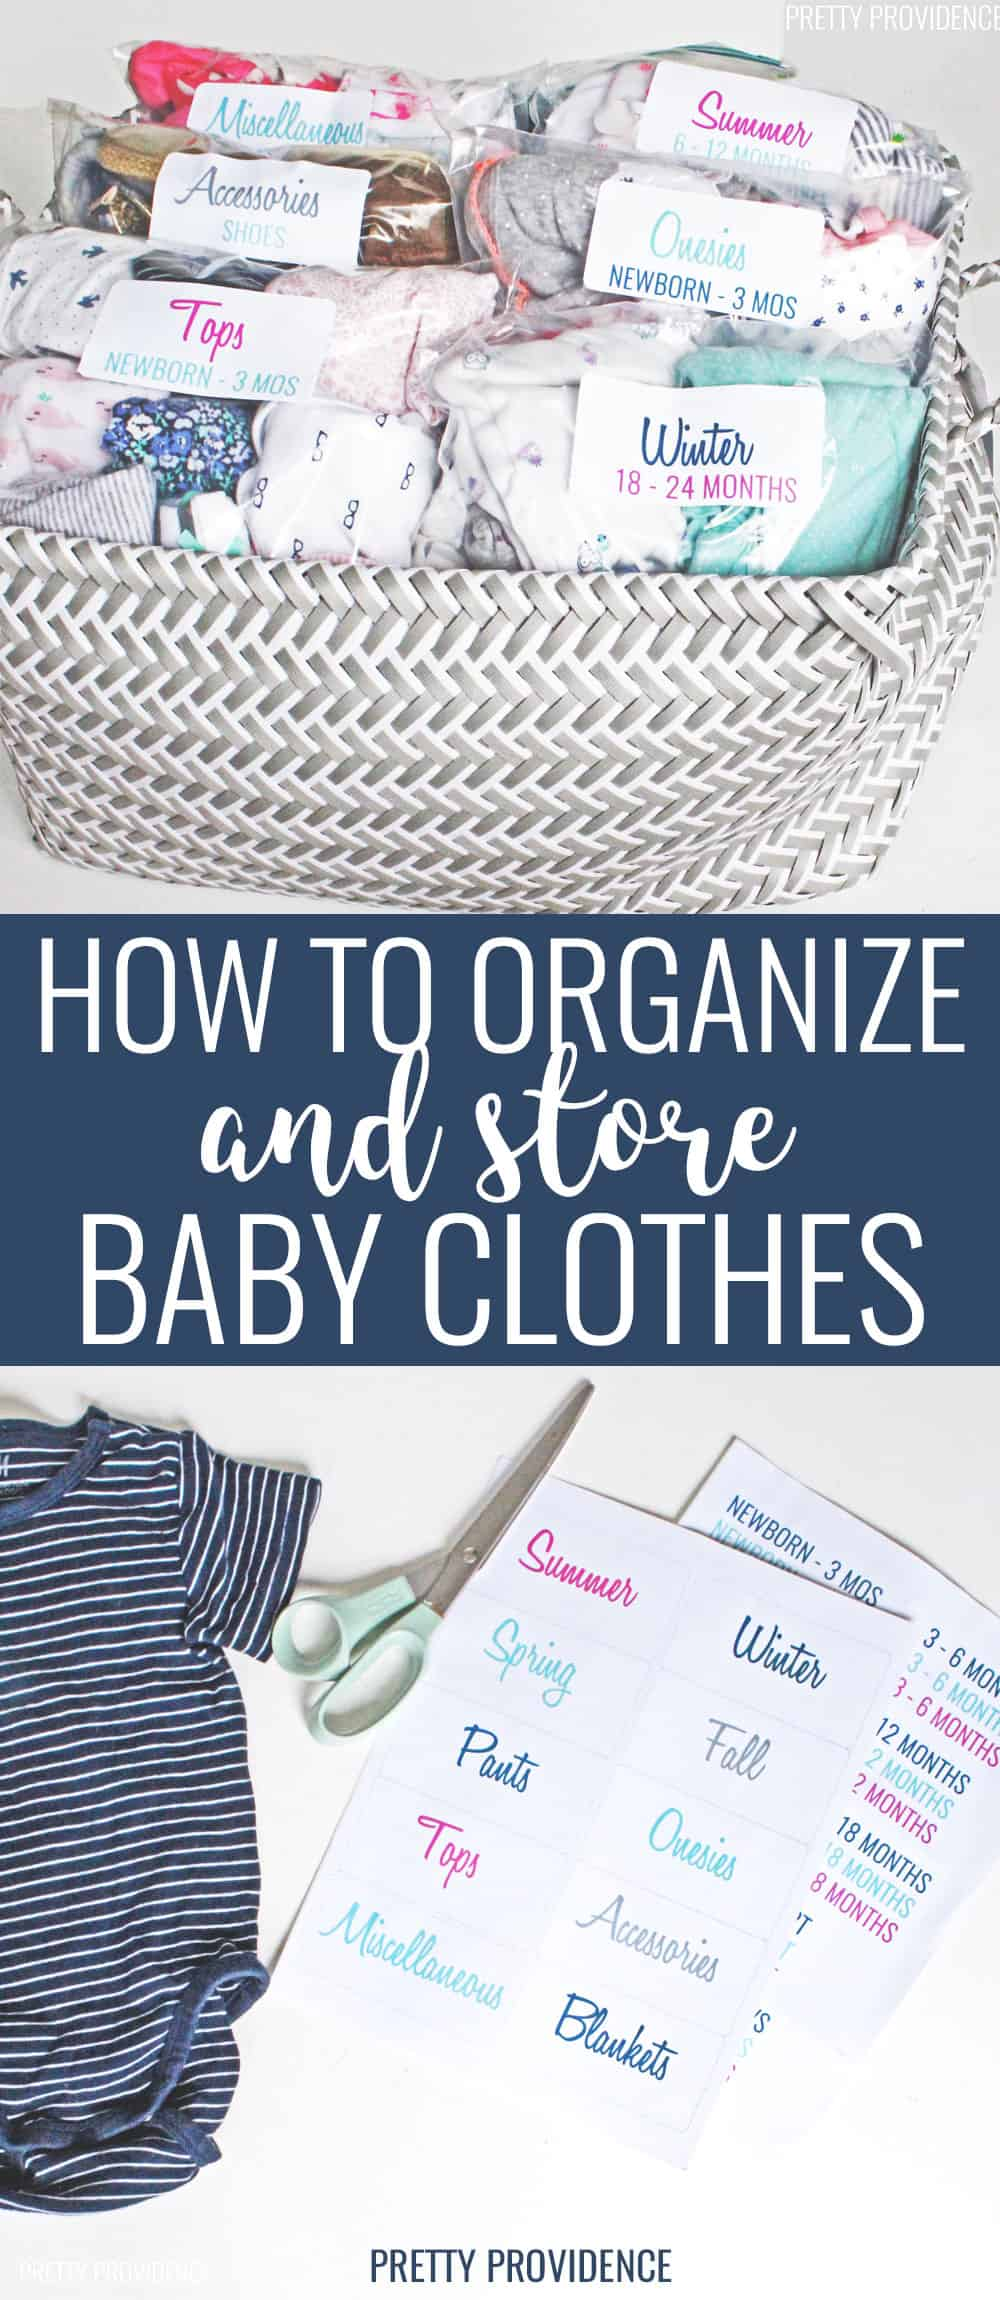 How to Organize Baby Clothes for the next baby